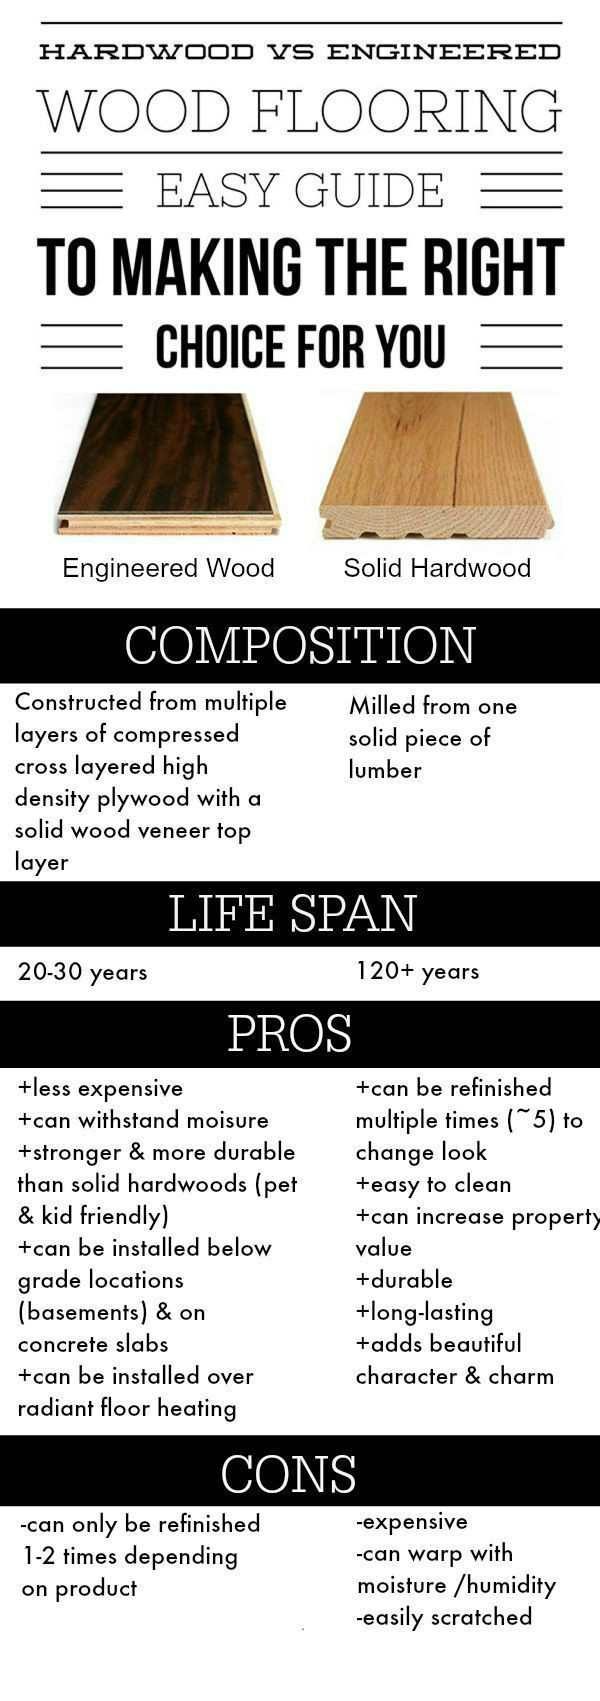 22 Fabulous Hardwood Floor Refinishing northern Nj 2021 free download hardwood floor refinishing northern nj of 8 best flooring images on pinterest flooring ground covering and intended for engineered wood flooring infographic comparison easy guide to decide w